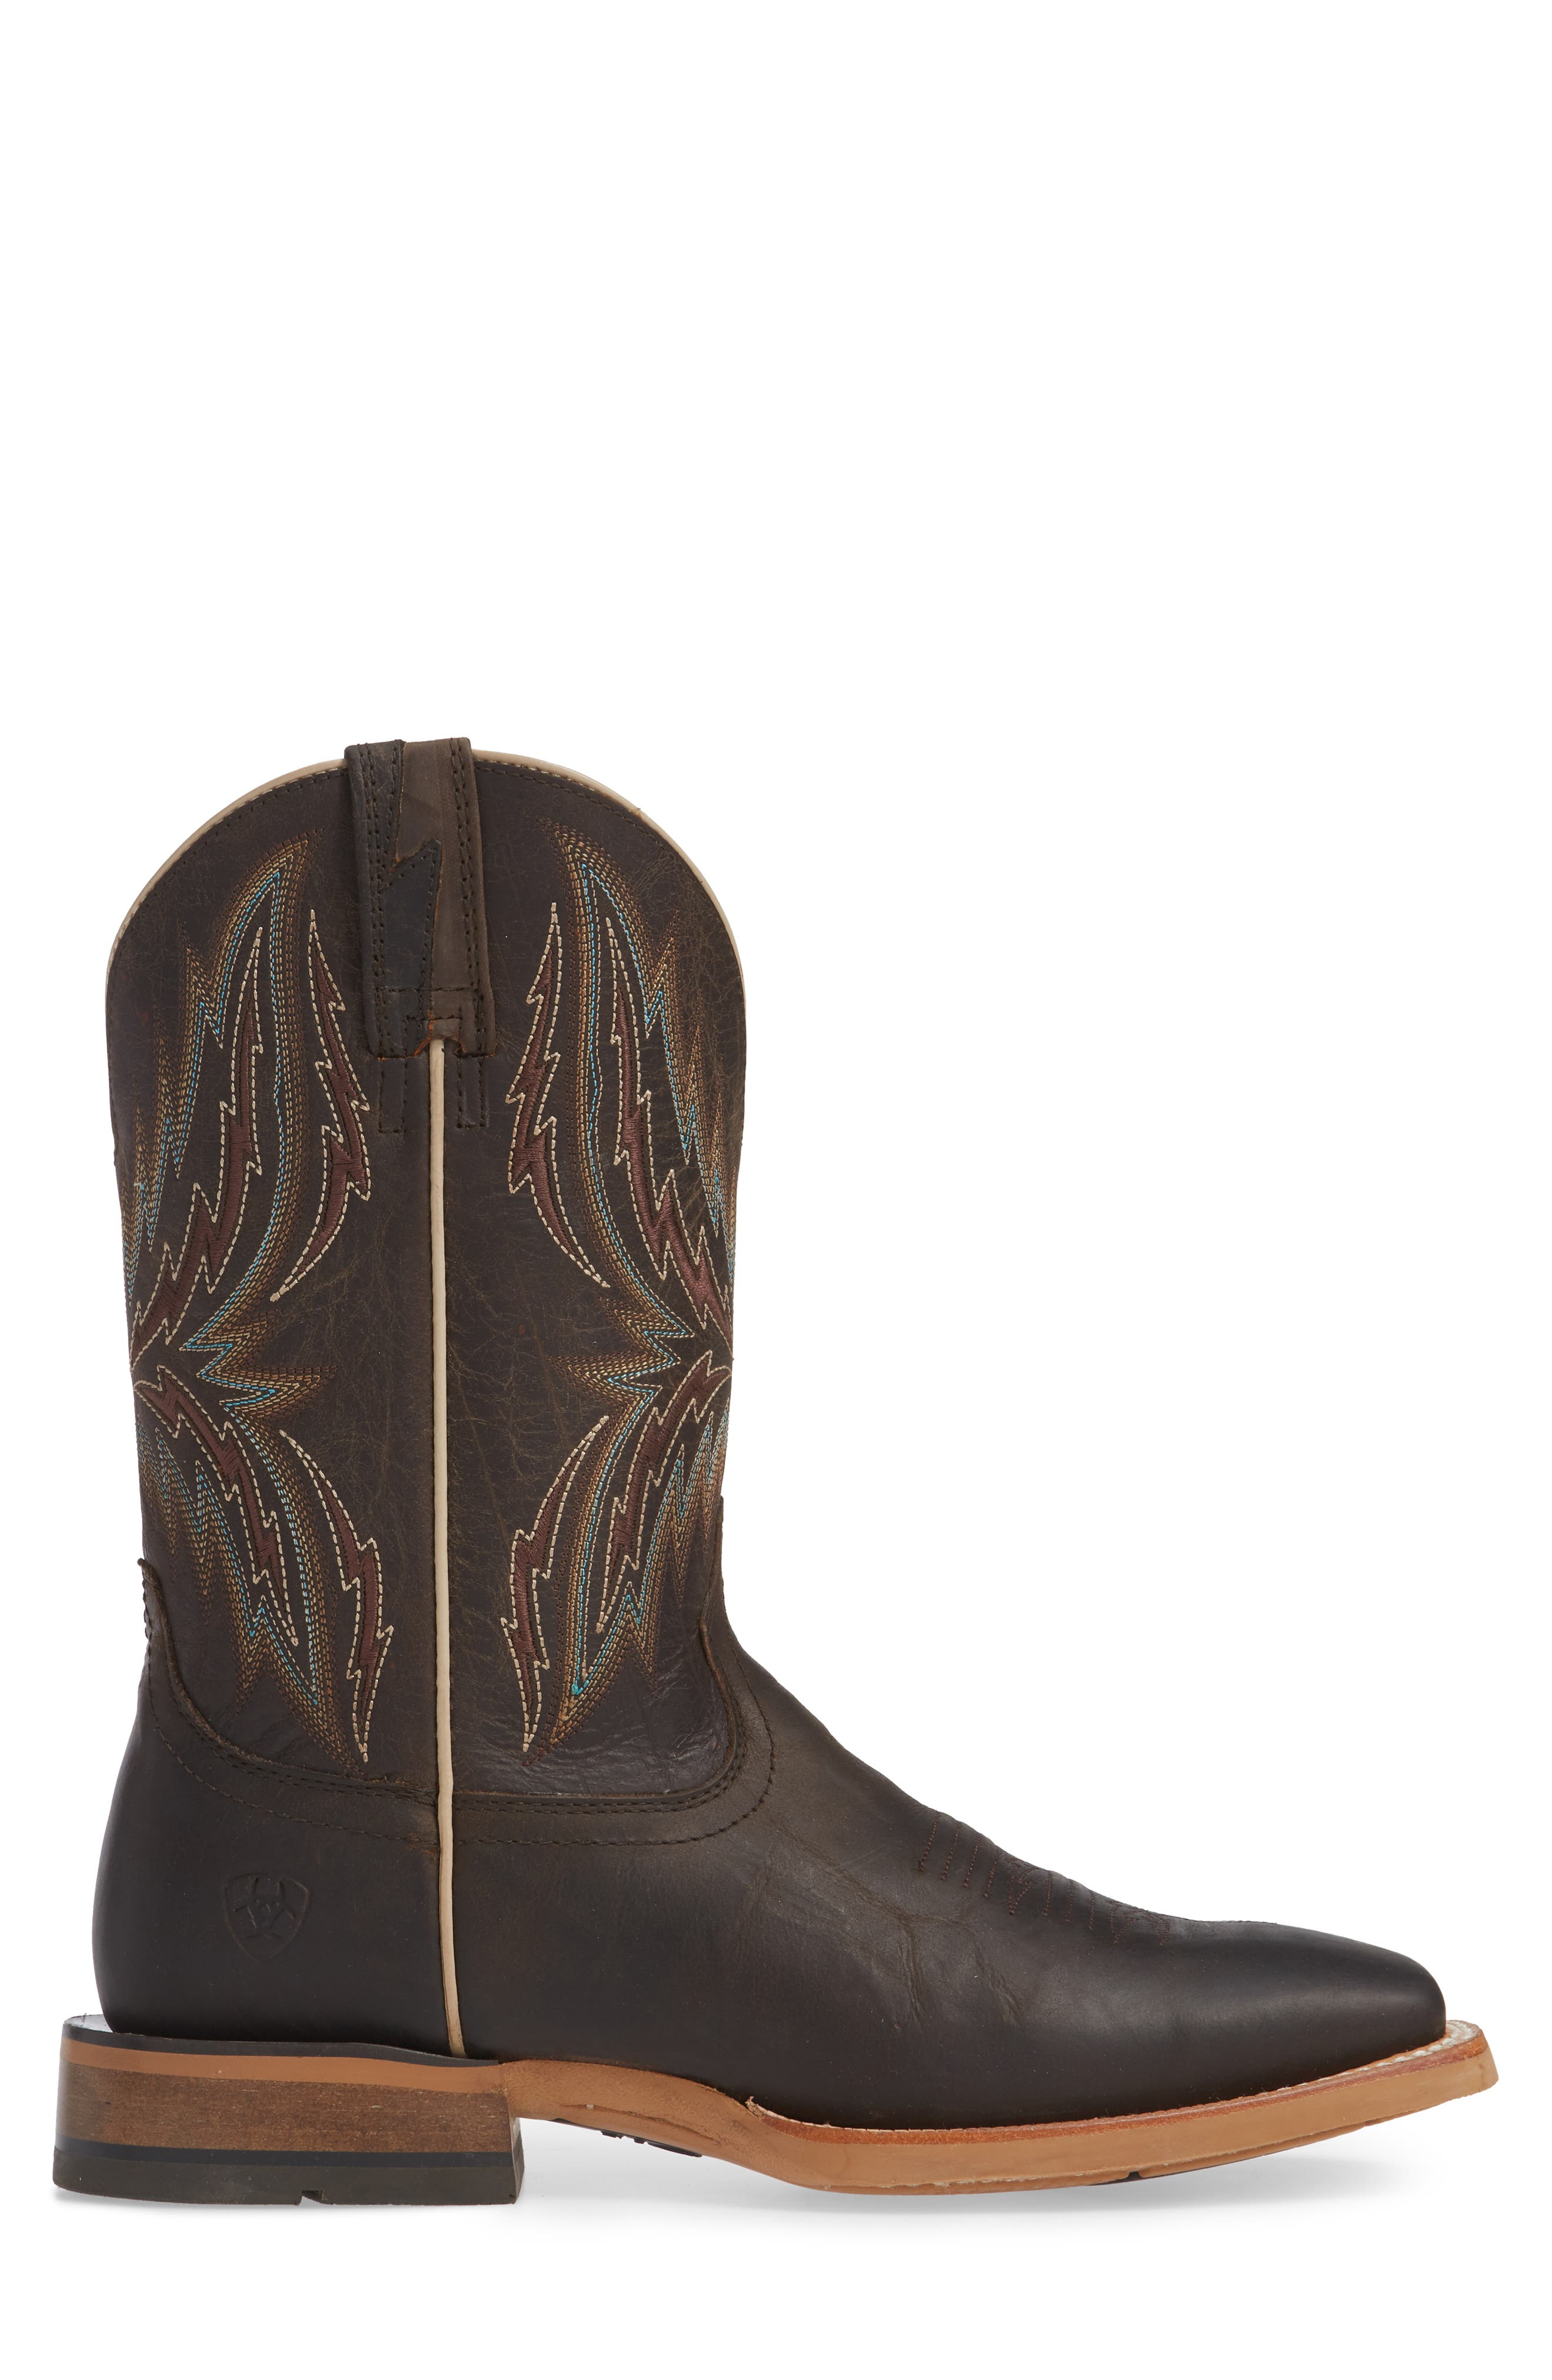 Arena Rebound Cowboy Boot,                             Alternate thumbnail 3, color,                             BROWN/ DESERT LEATHER